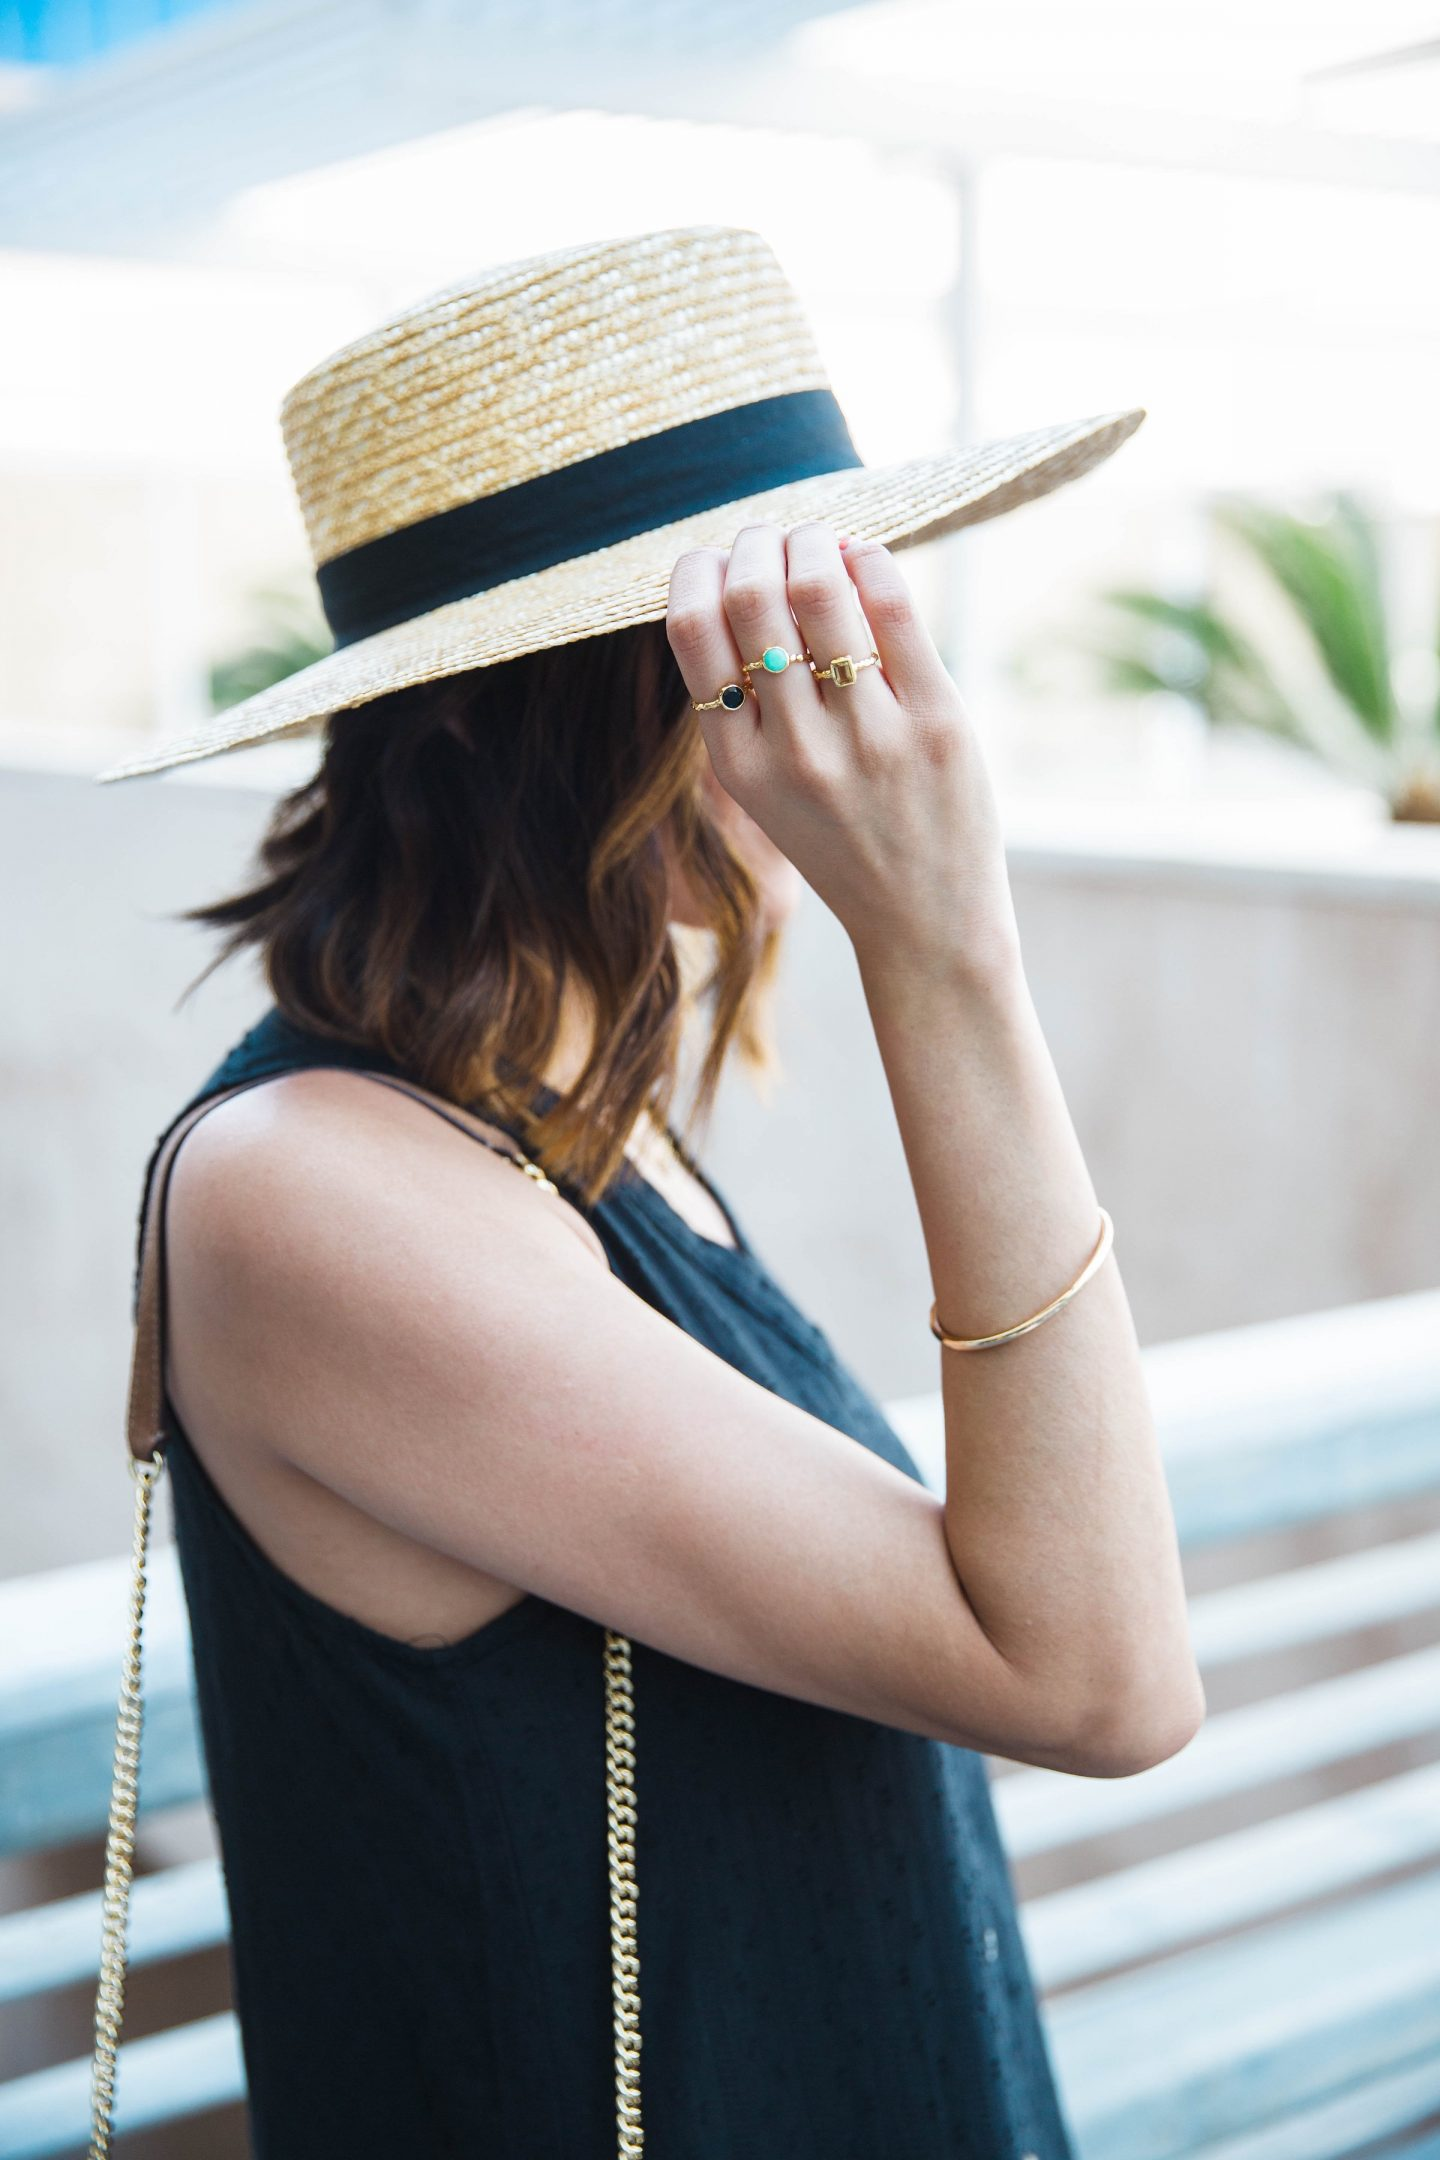 How To Accessorize A Minimal Look